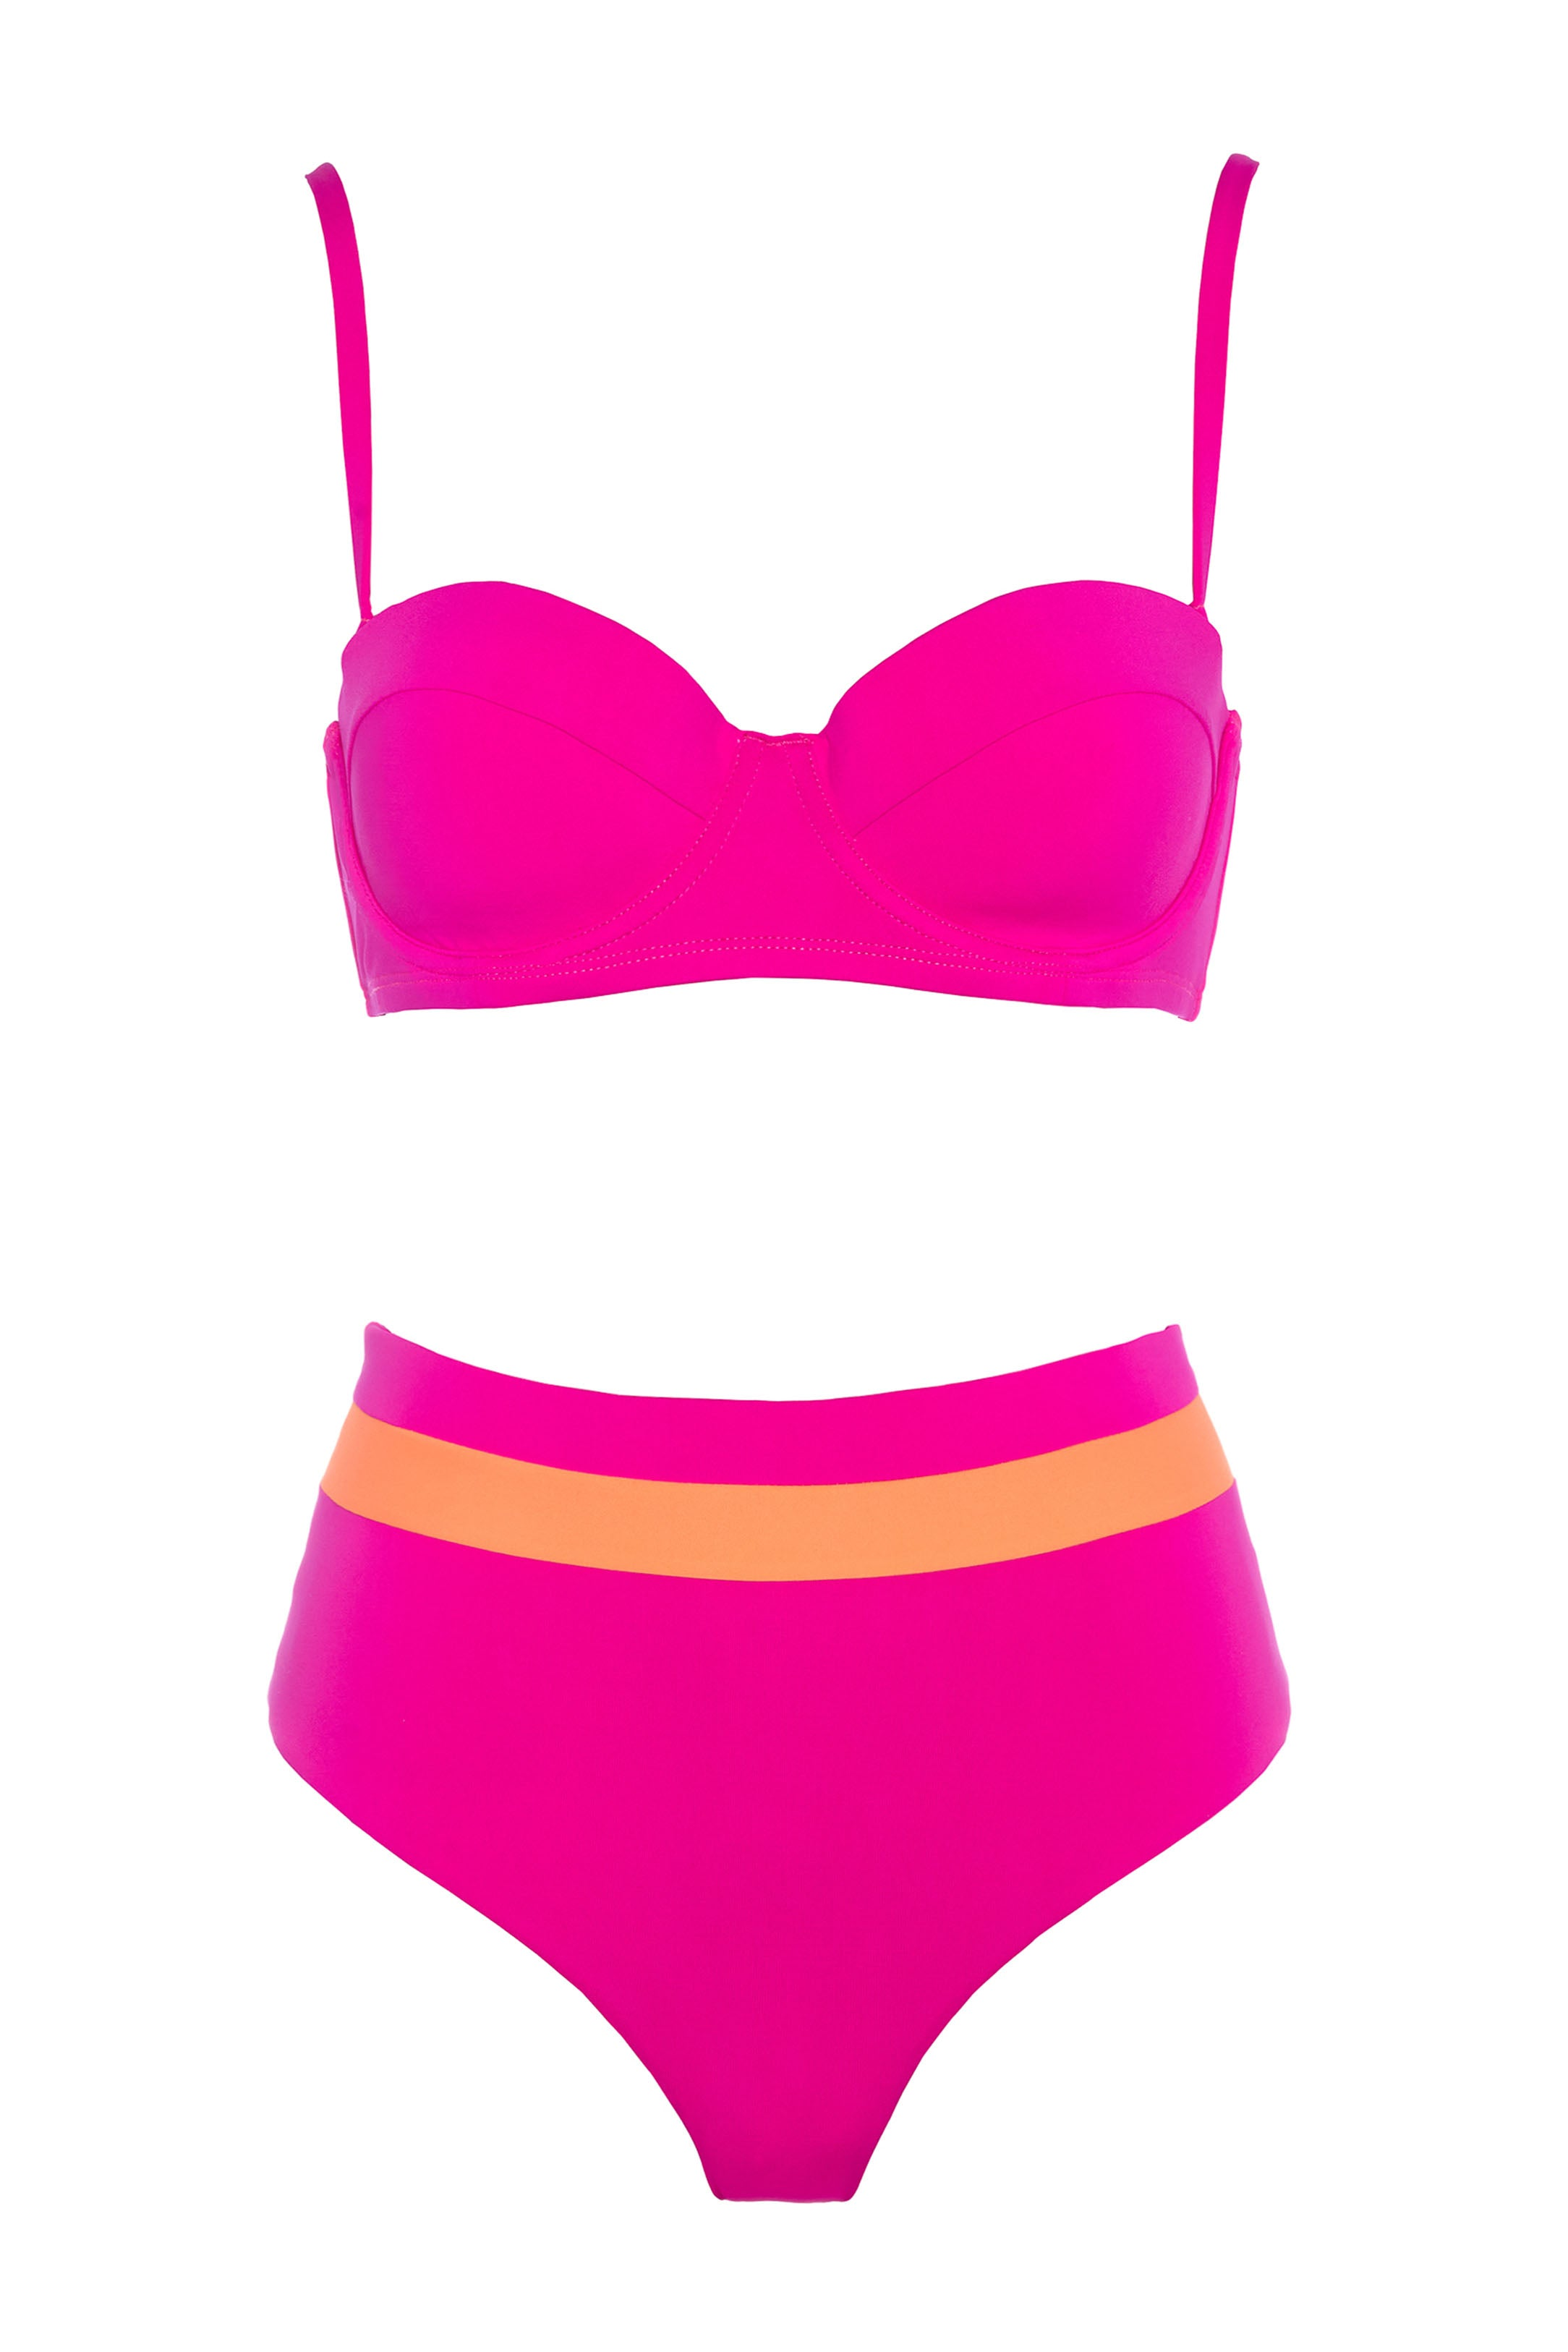 POOL PARTY BALCONETTE PINK BIKINI SET